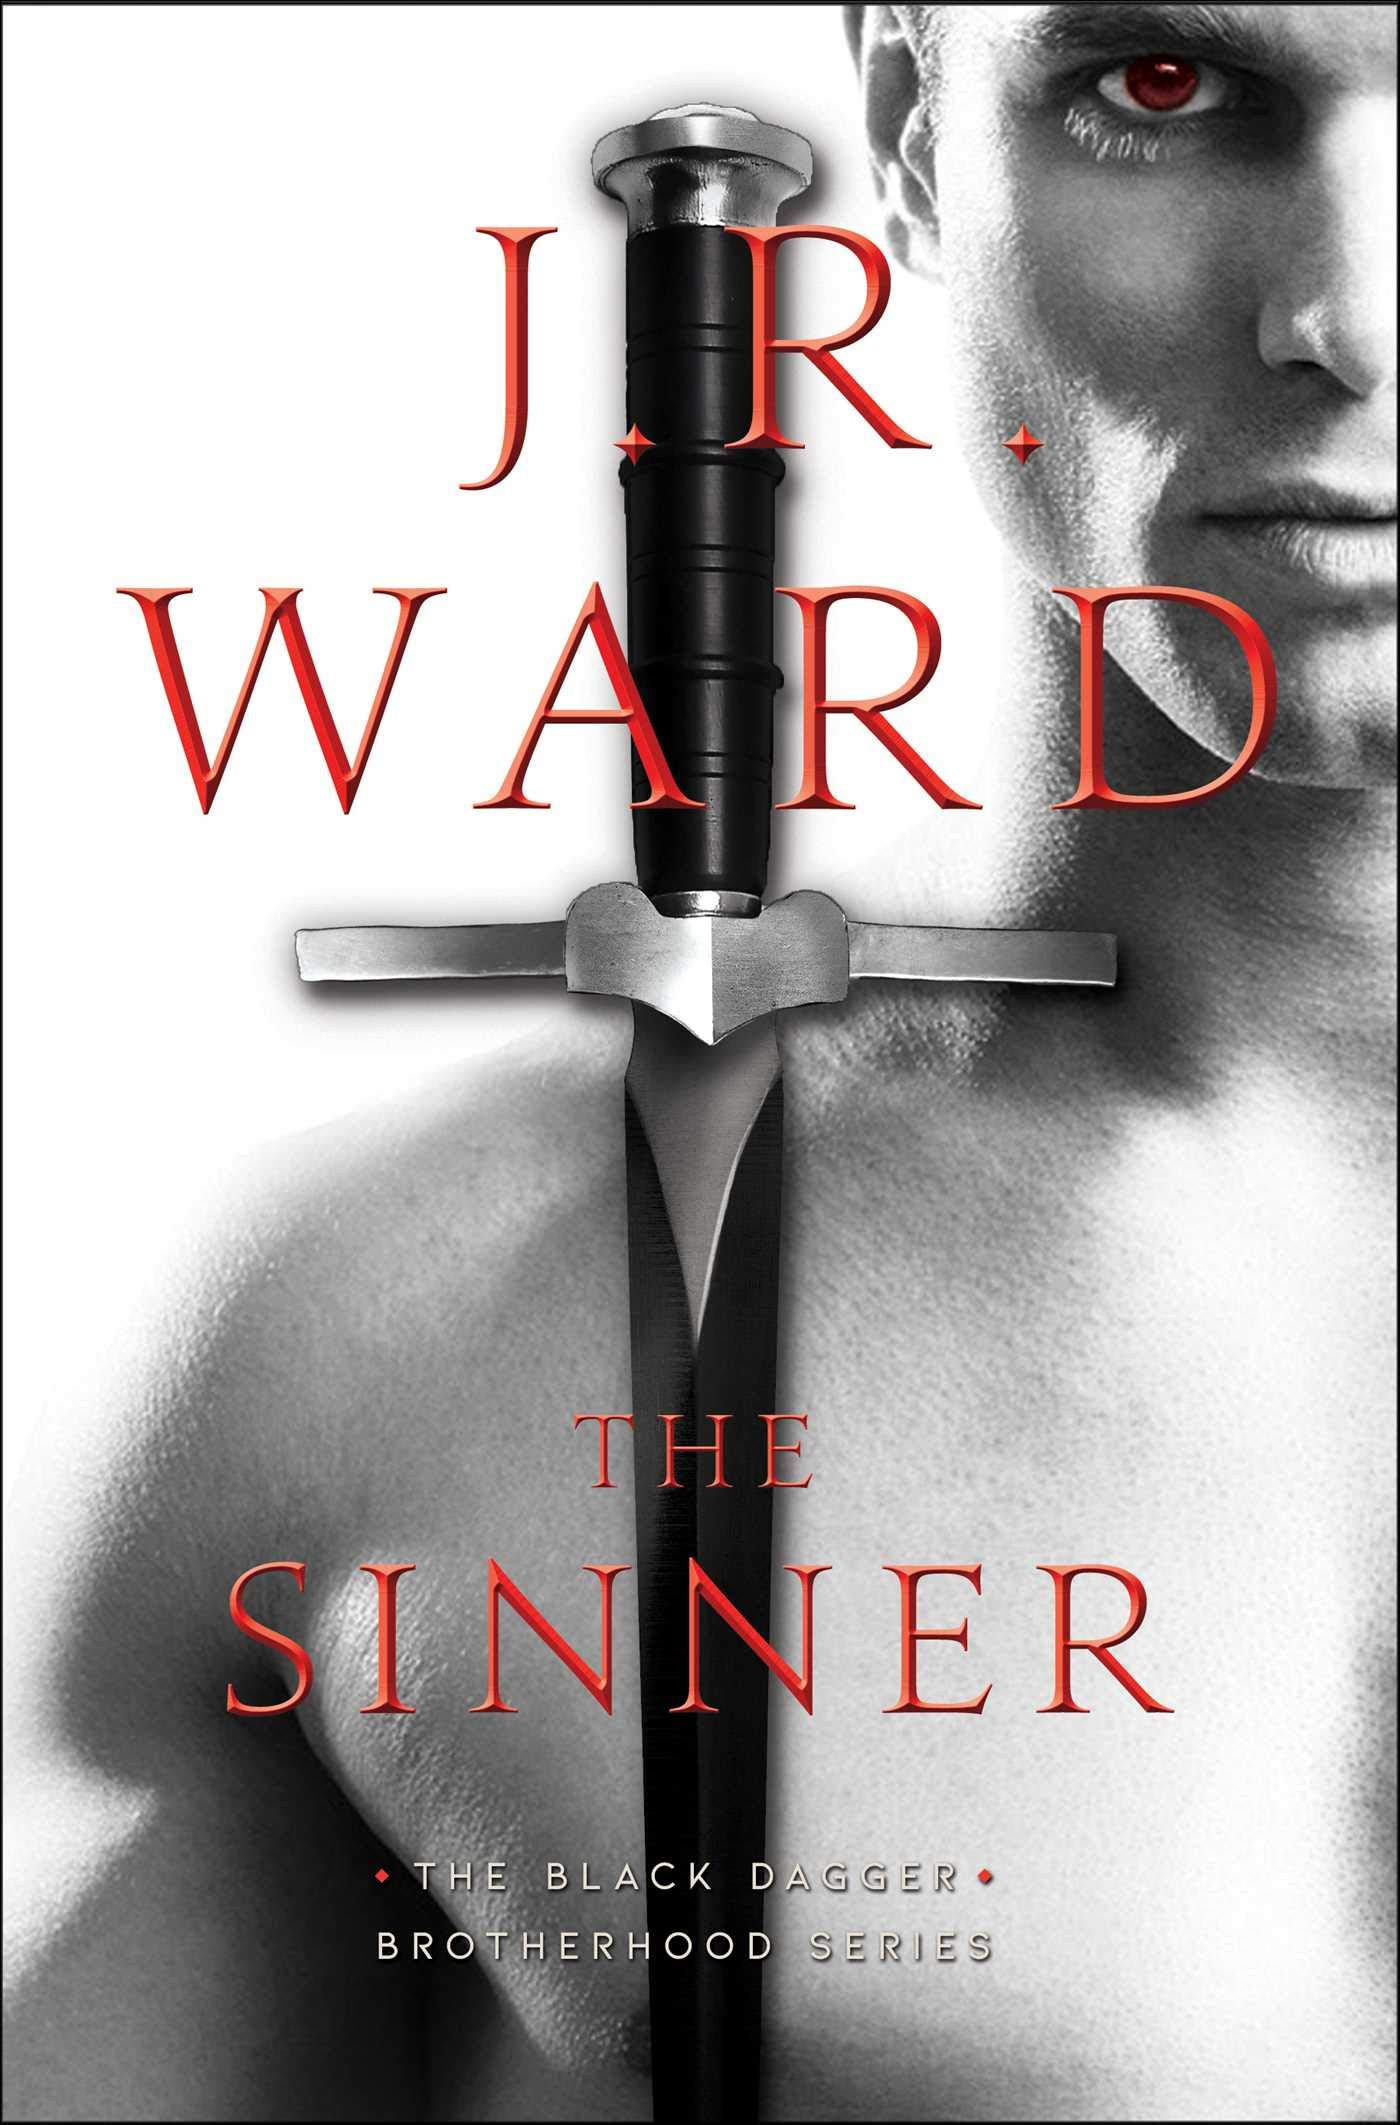 The Sinner (18) (The Black Dagger Brotherhood series) by Gallery Books